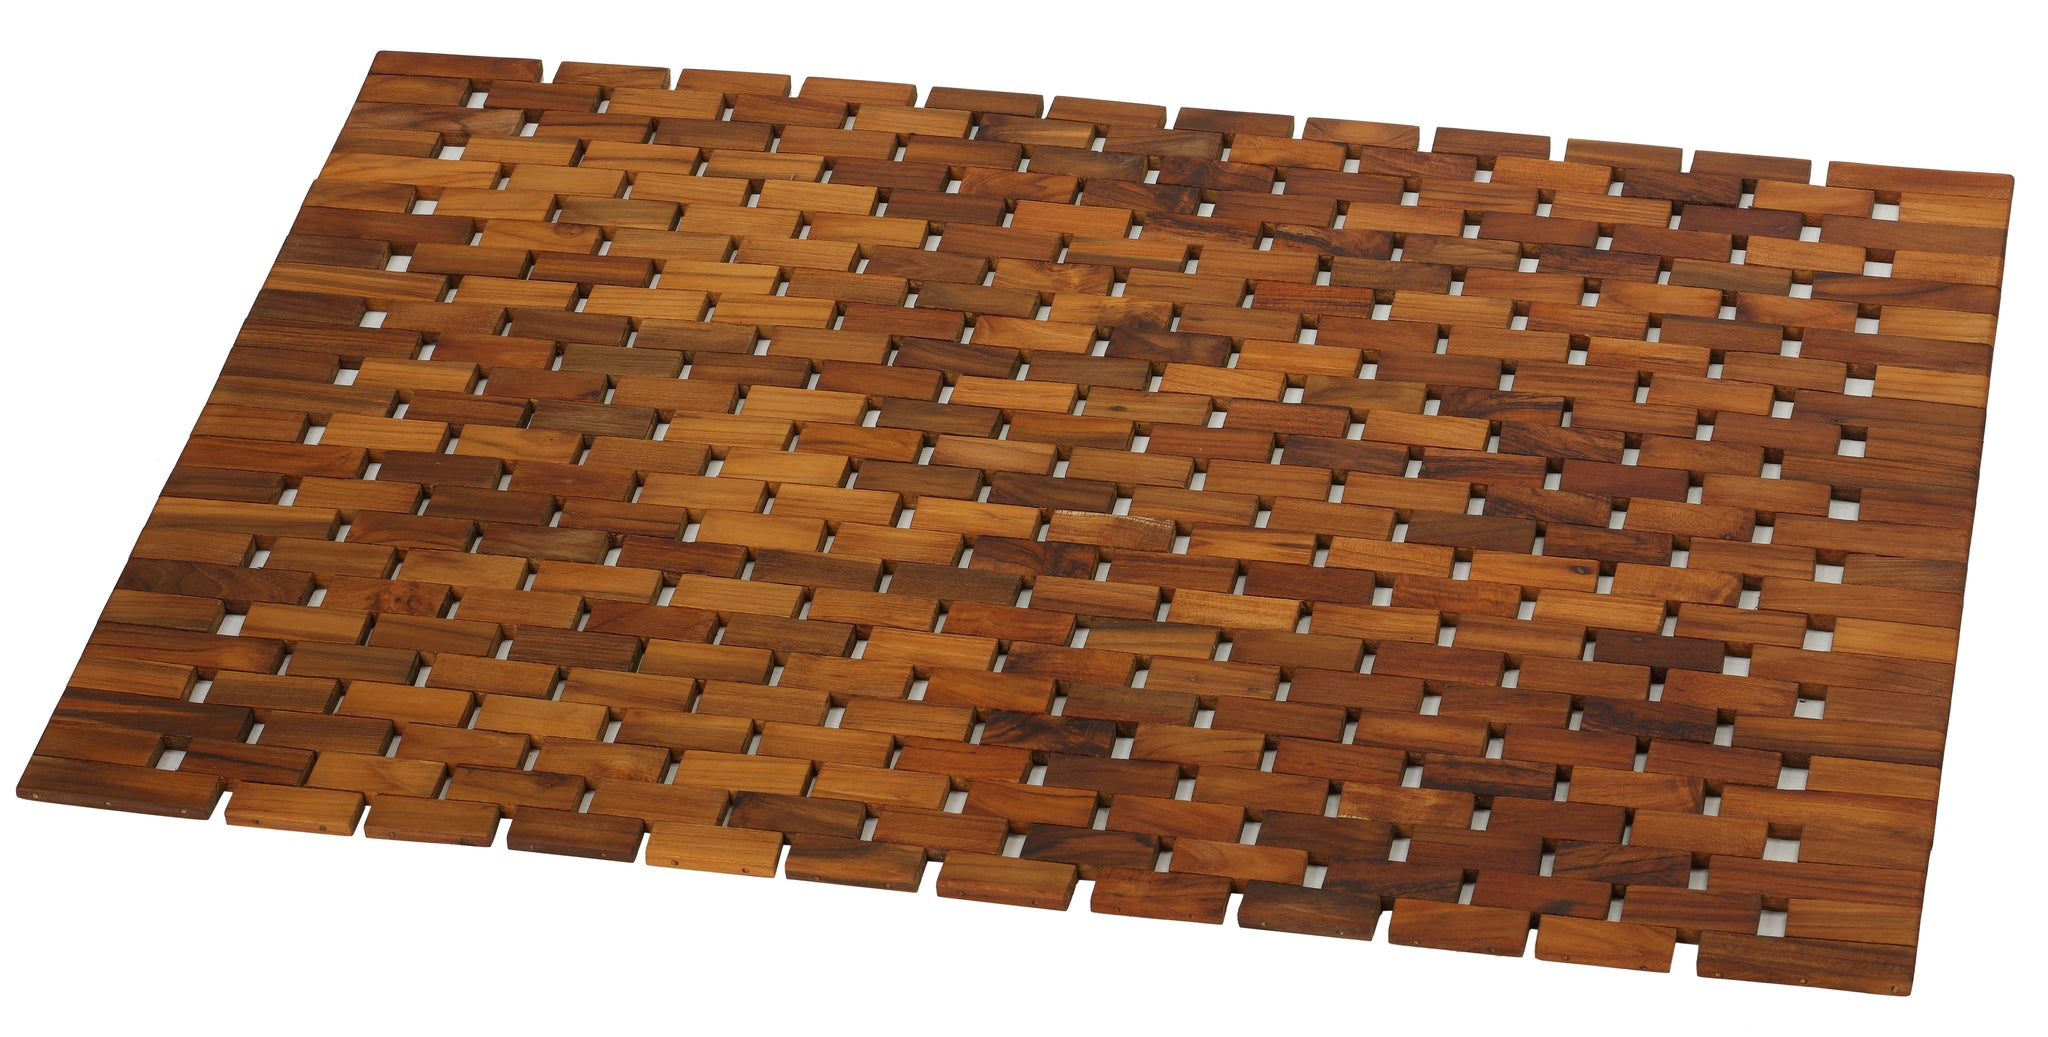 Bare Decor Kuki Spa Mosaic Shower Mat in Solid Teak Wood Oiled Finish, 30x20